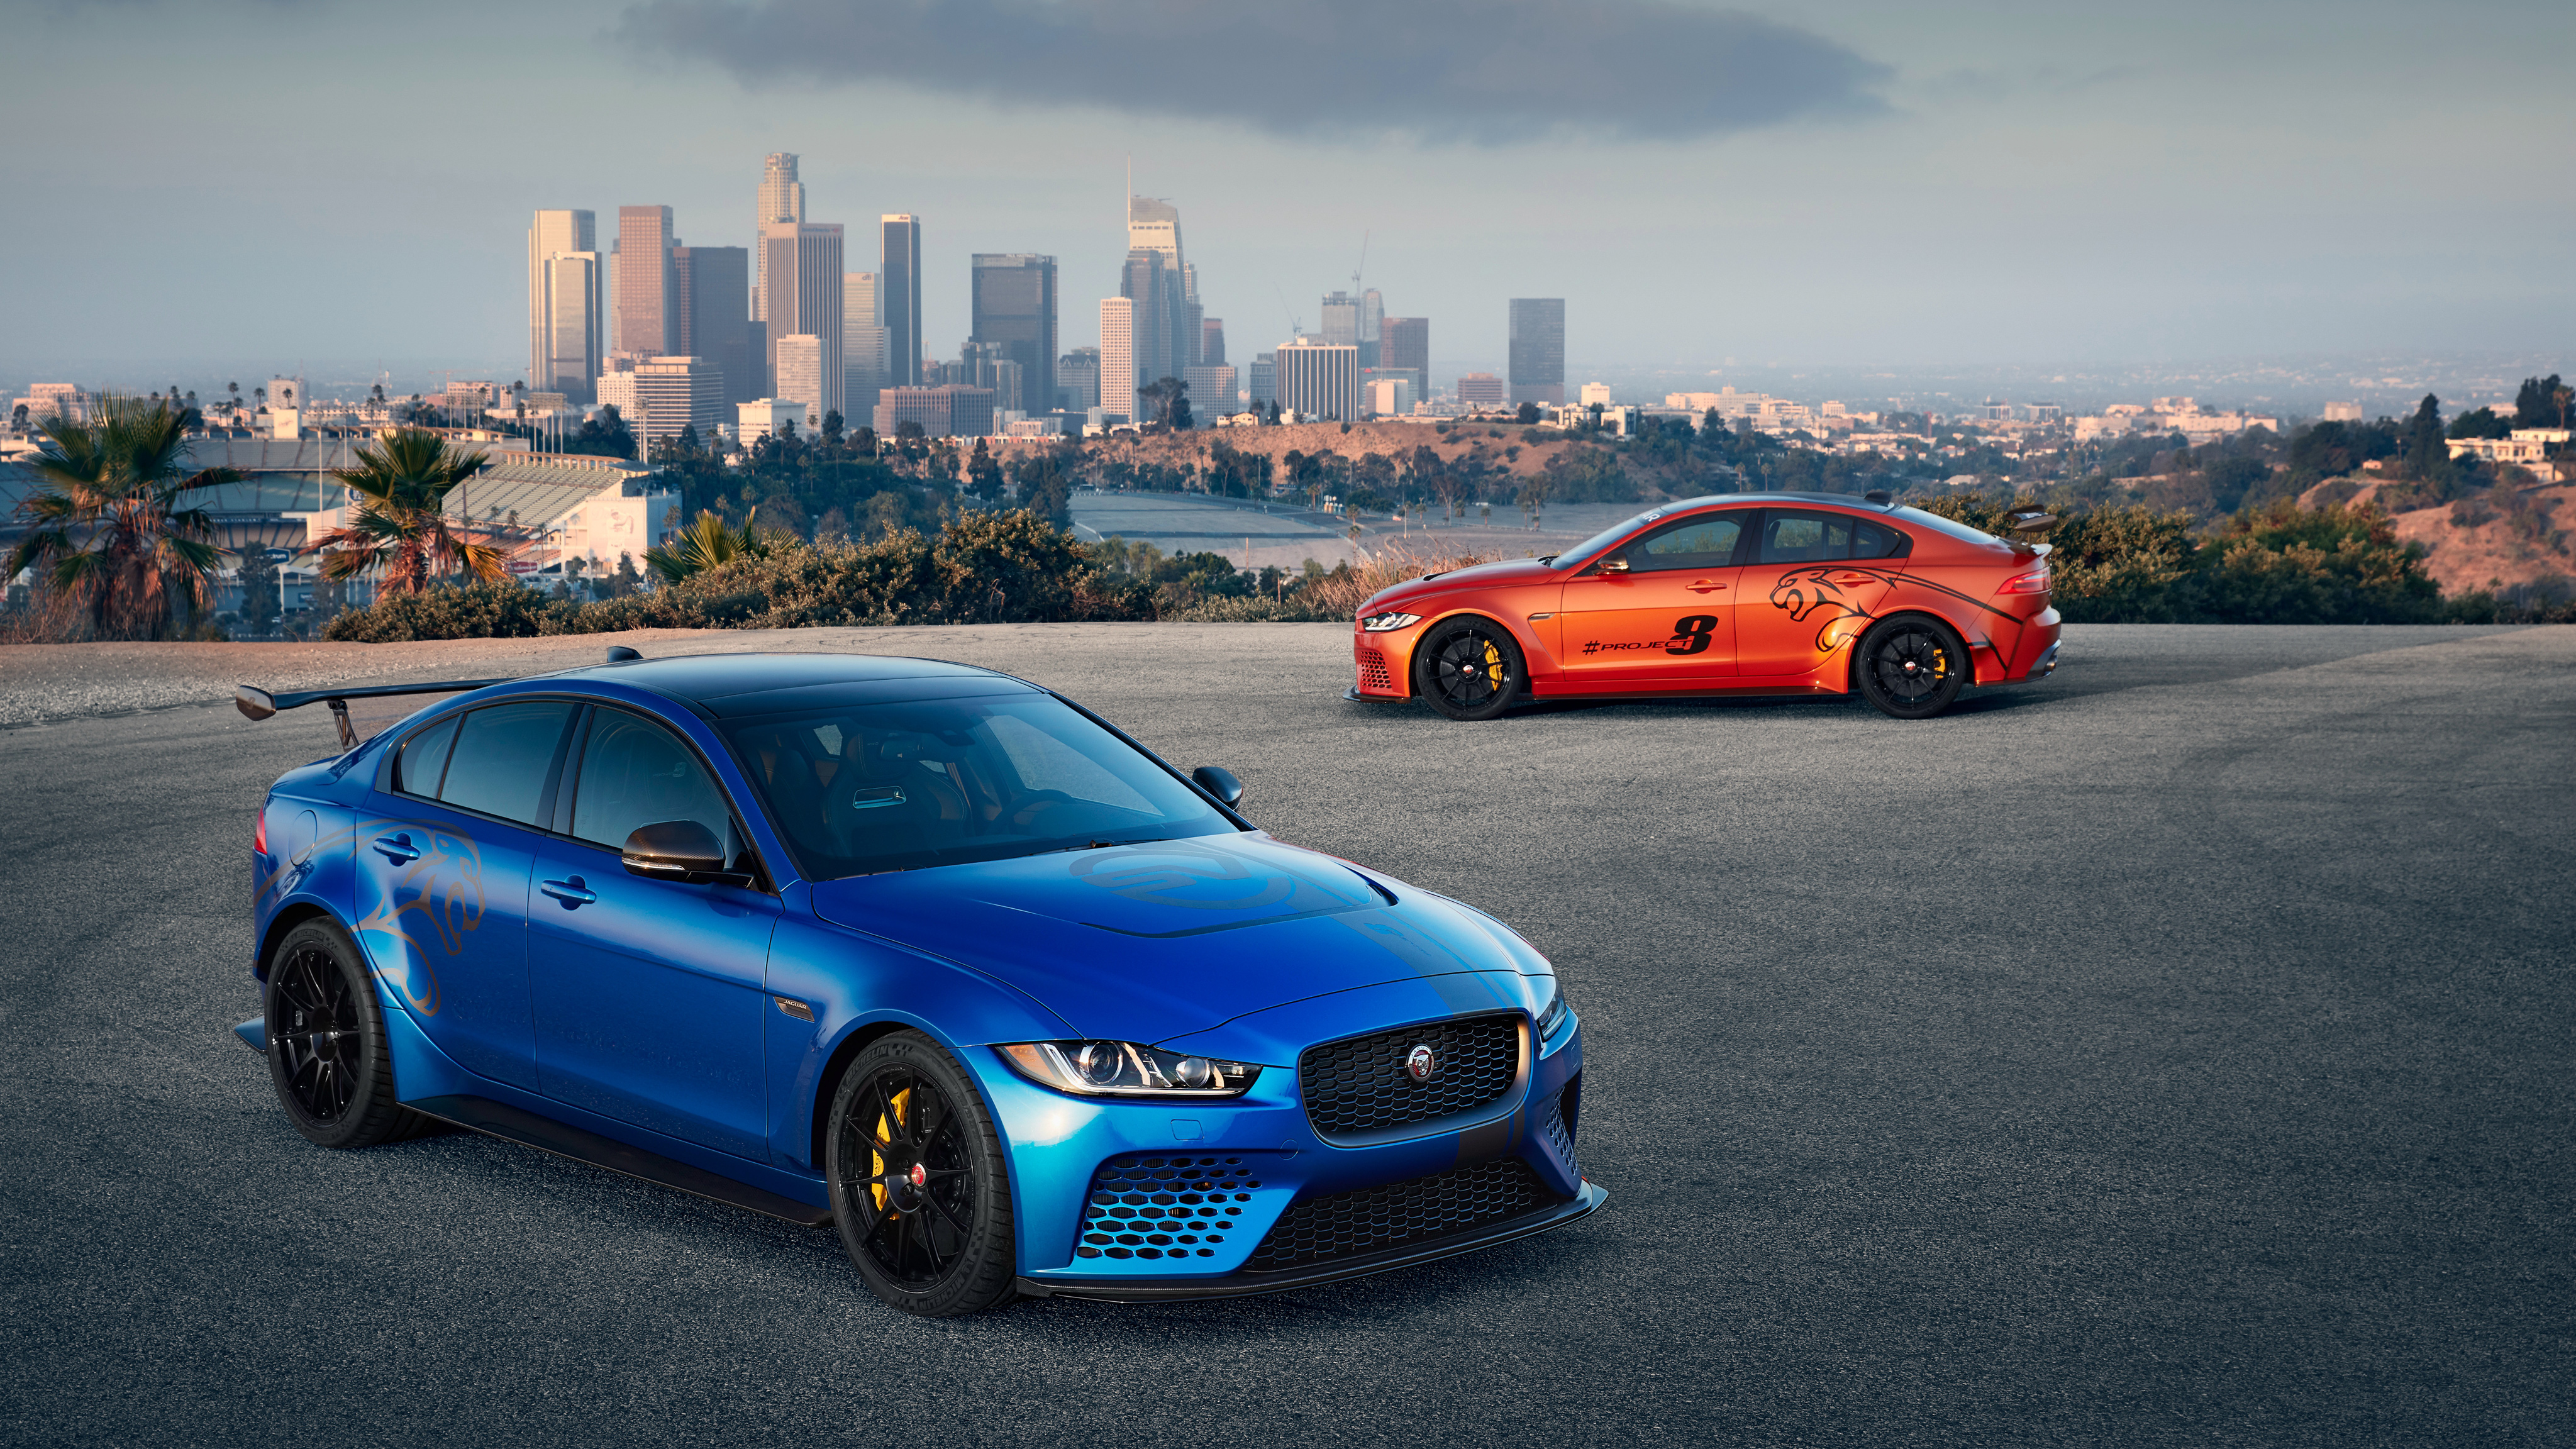 Jaguar Xe Sv Project 8 2018 Jaguar Xe Sv Project 8 3 Wallpaper Hd Car